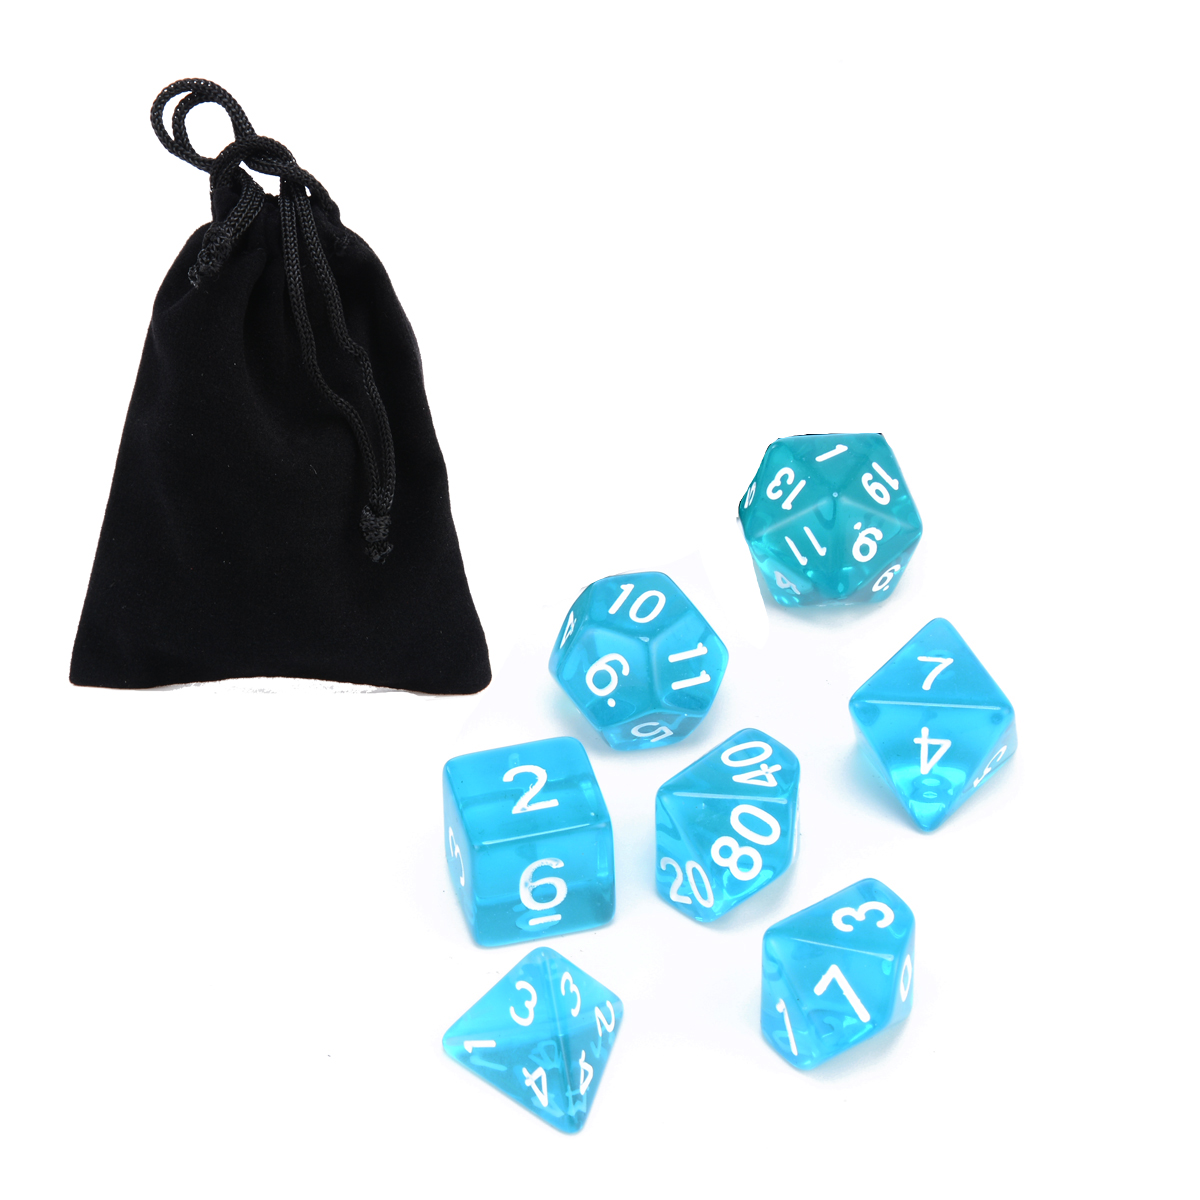 7pc Translucent Polyhedral Dices Blue Set For RPG Dungeons and Dragons With Dice Bag Family School Party Bar Outdoor Table Games